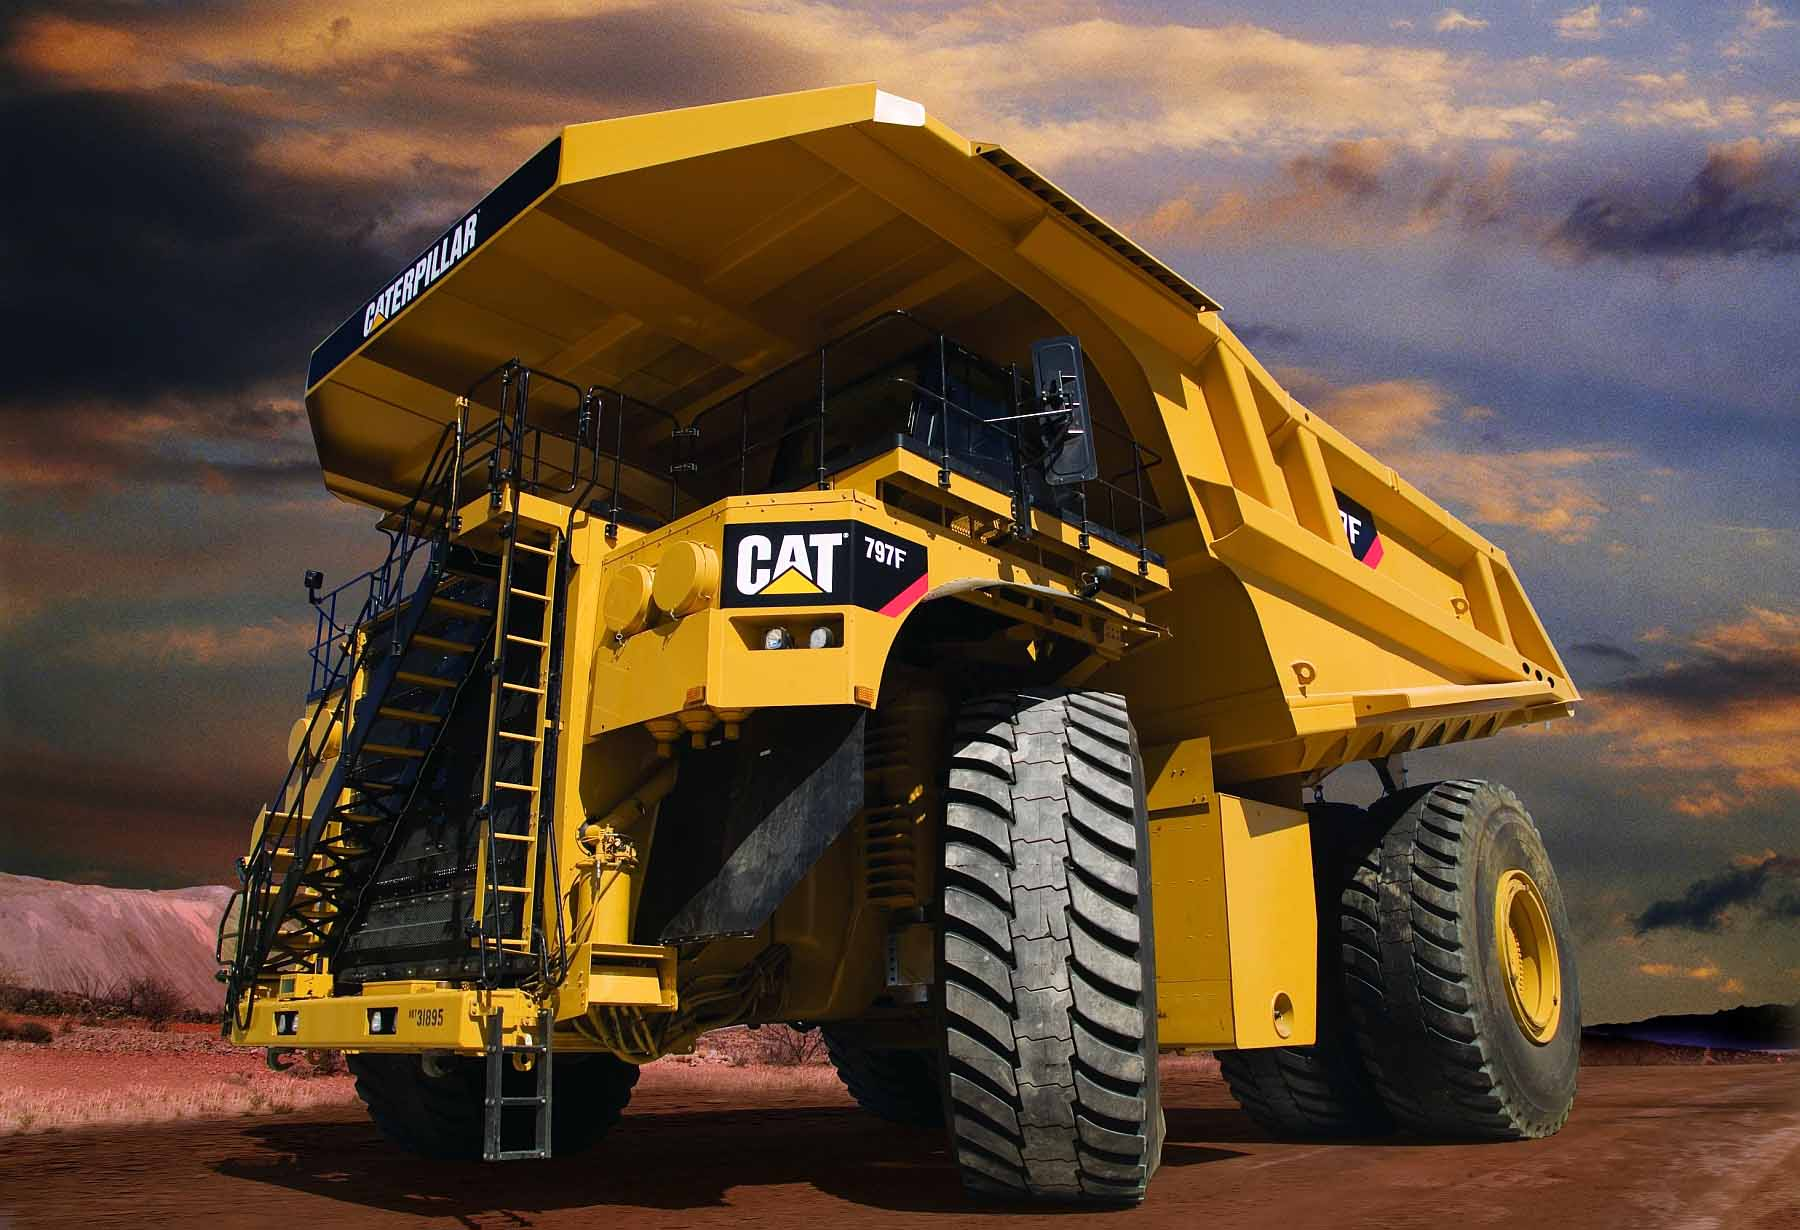 Caterpillar Wallpapers NewsReadin 1800x1230